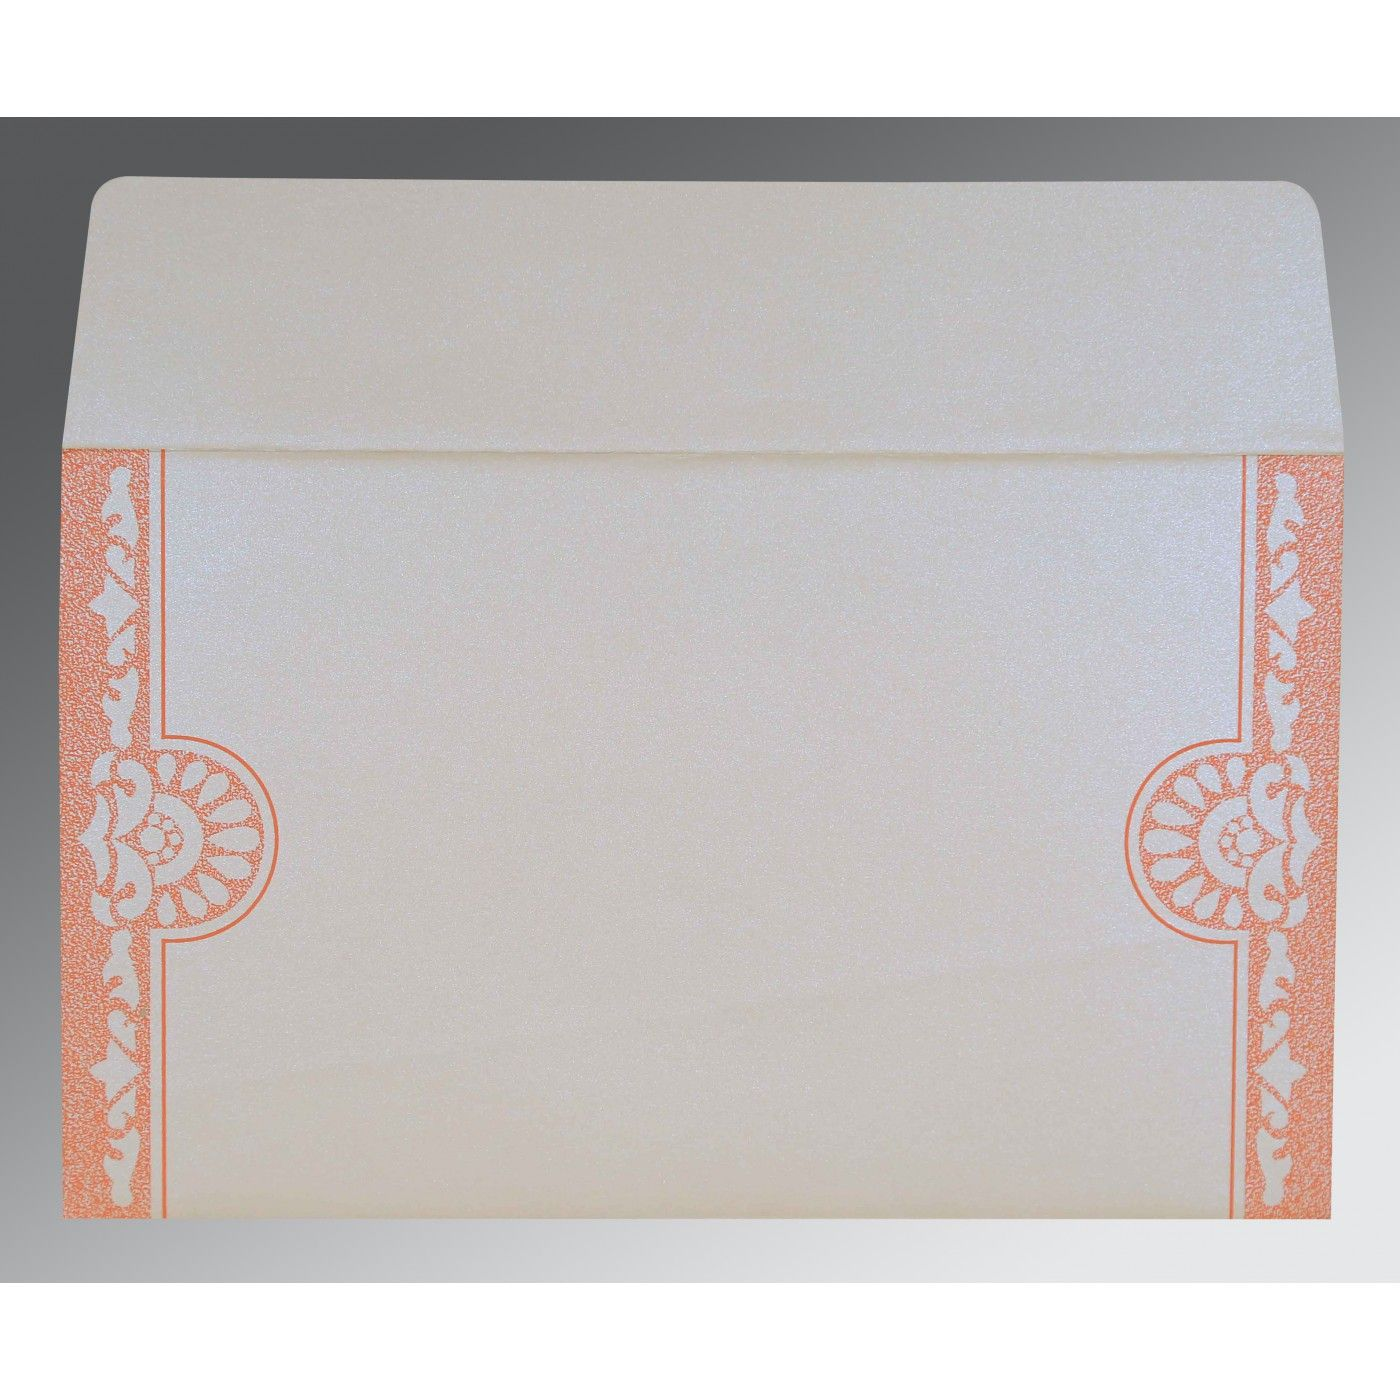 OFF-WHITE BLUE SHIMMERY FLORAL THEMED - SCREEN PRINTED WEDDING CARD : CG-8227N - IndianWeddingCards